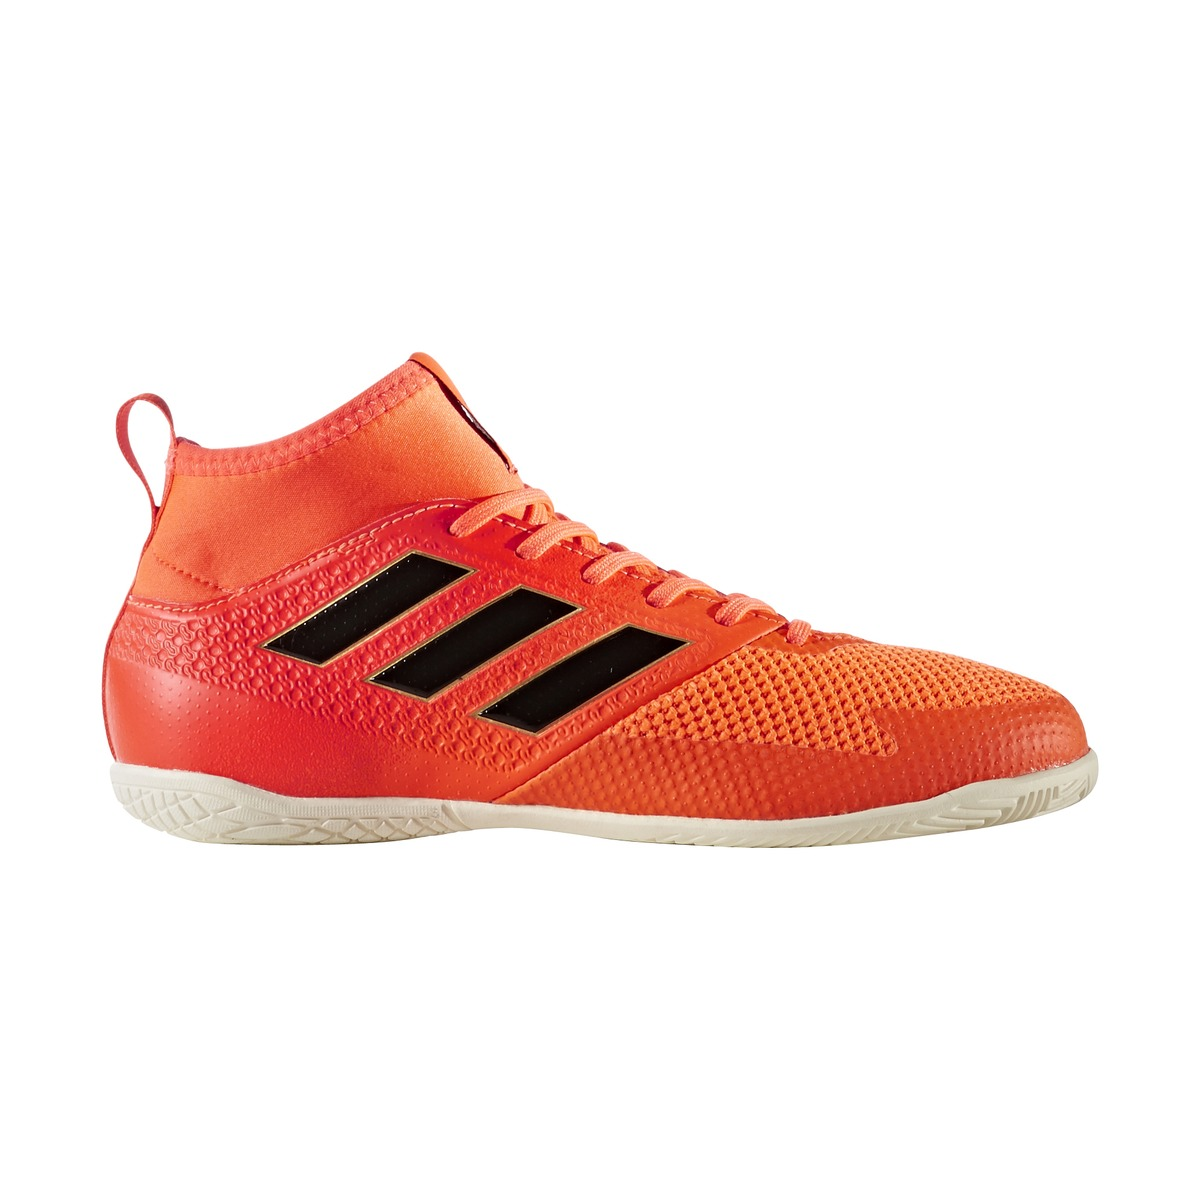 c23f80ba Find every shop in the world selling adidas ace junior at PricePi.com